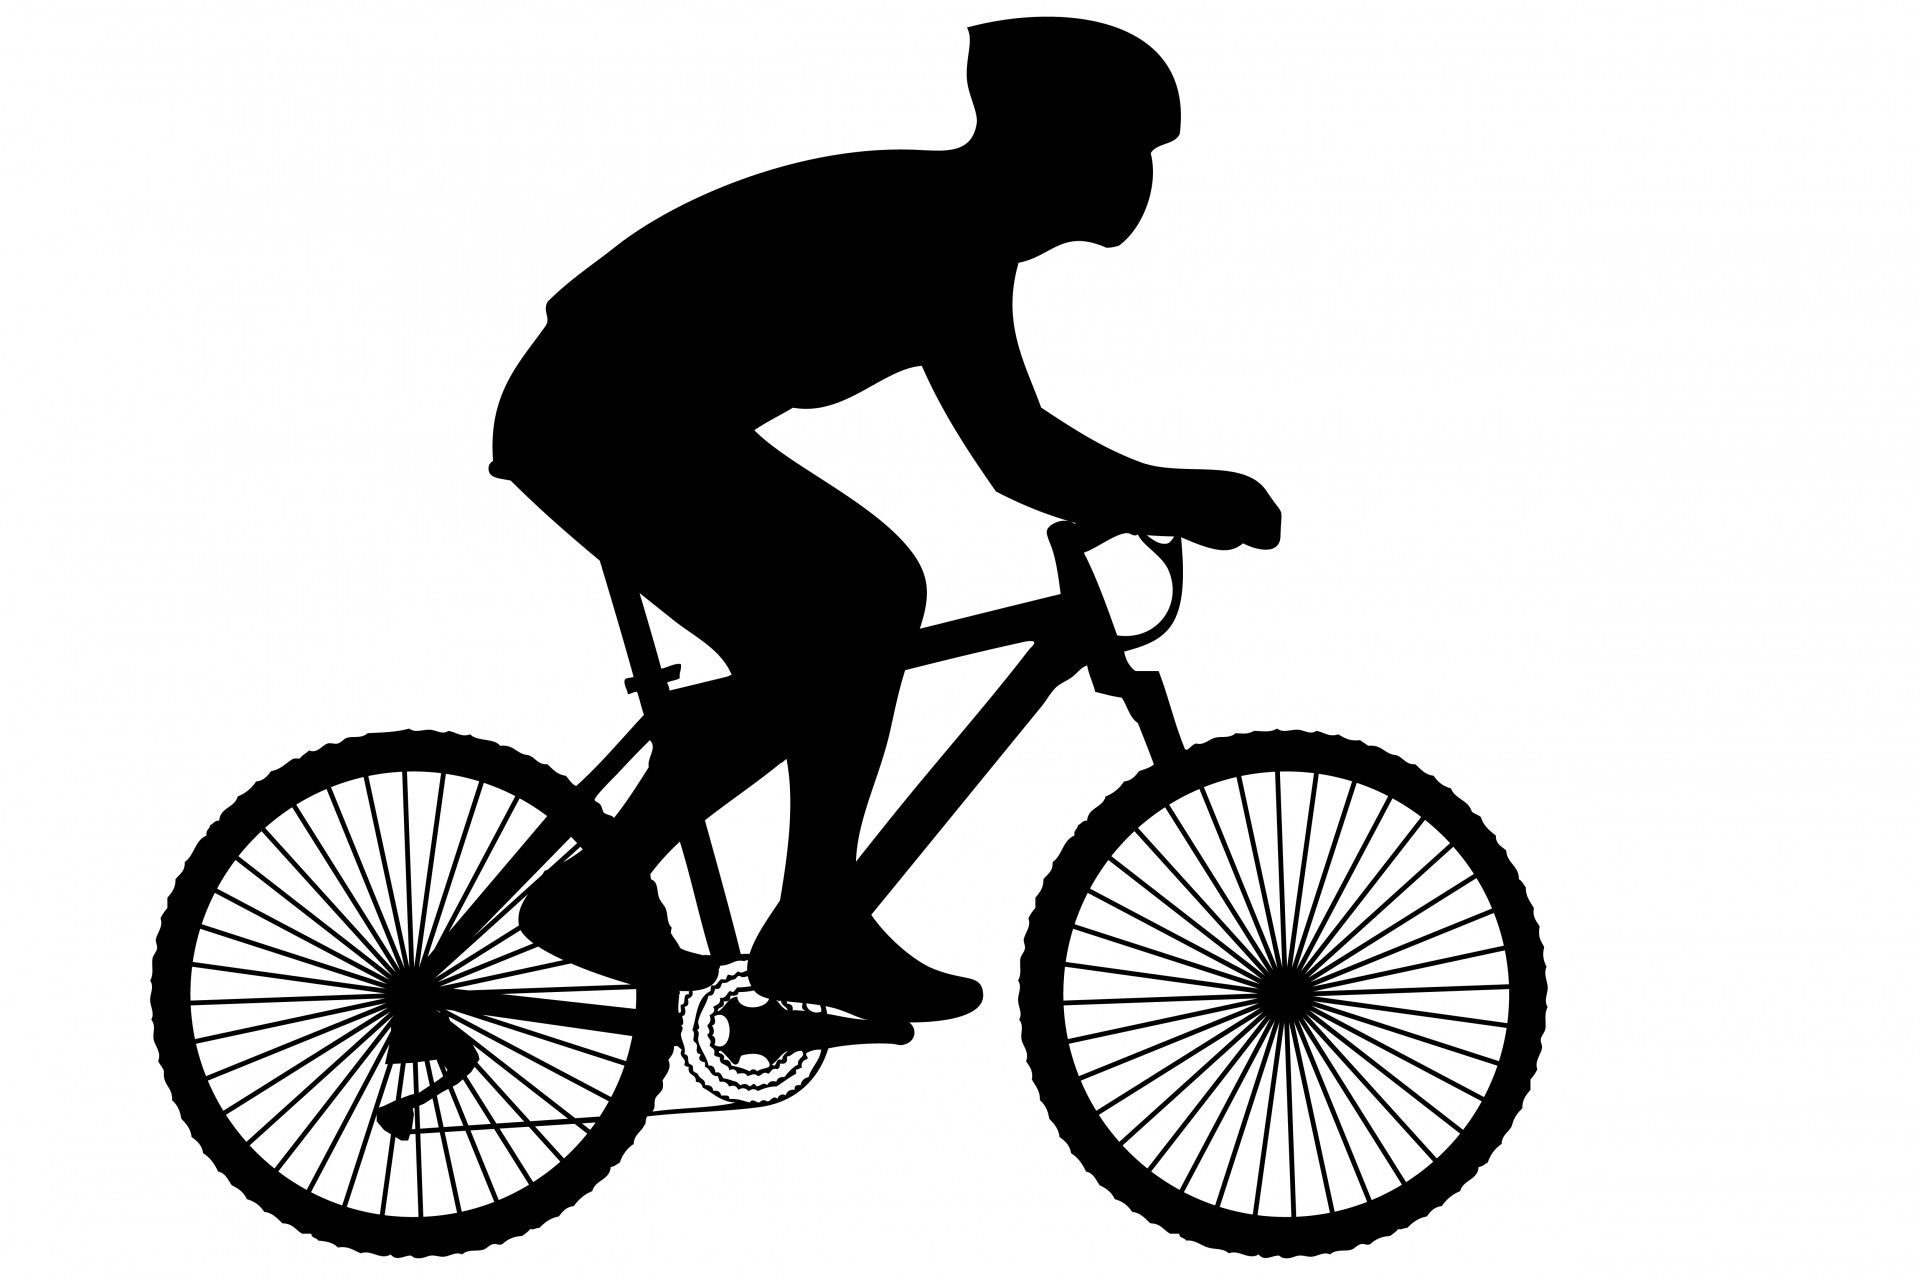 Camping and biking clipart black and white jpg transparent download Black silhouette of a cyclist on a racing bike clipart | Ceramic ... jpg transparent download